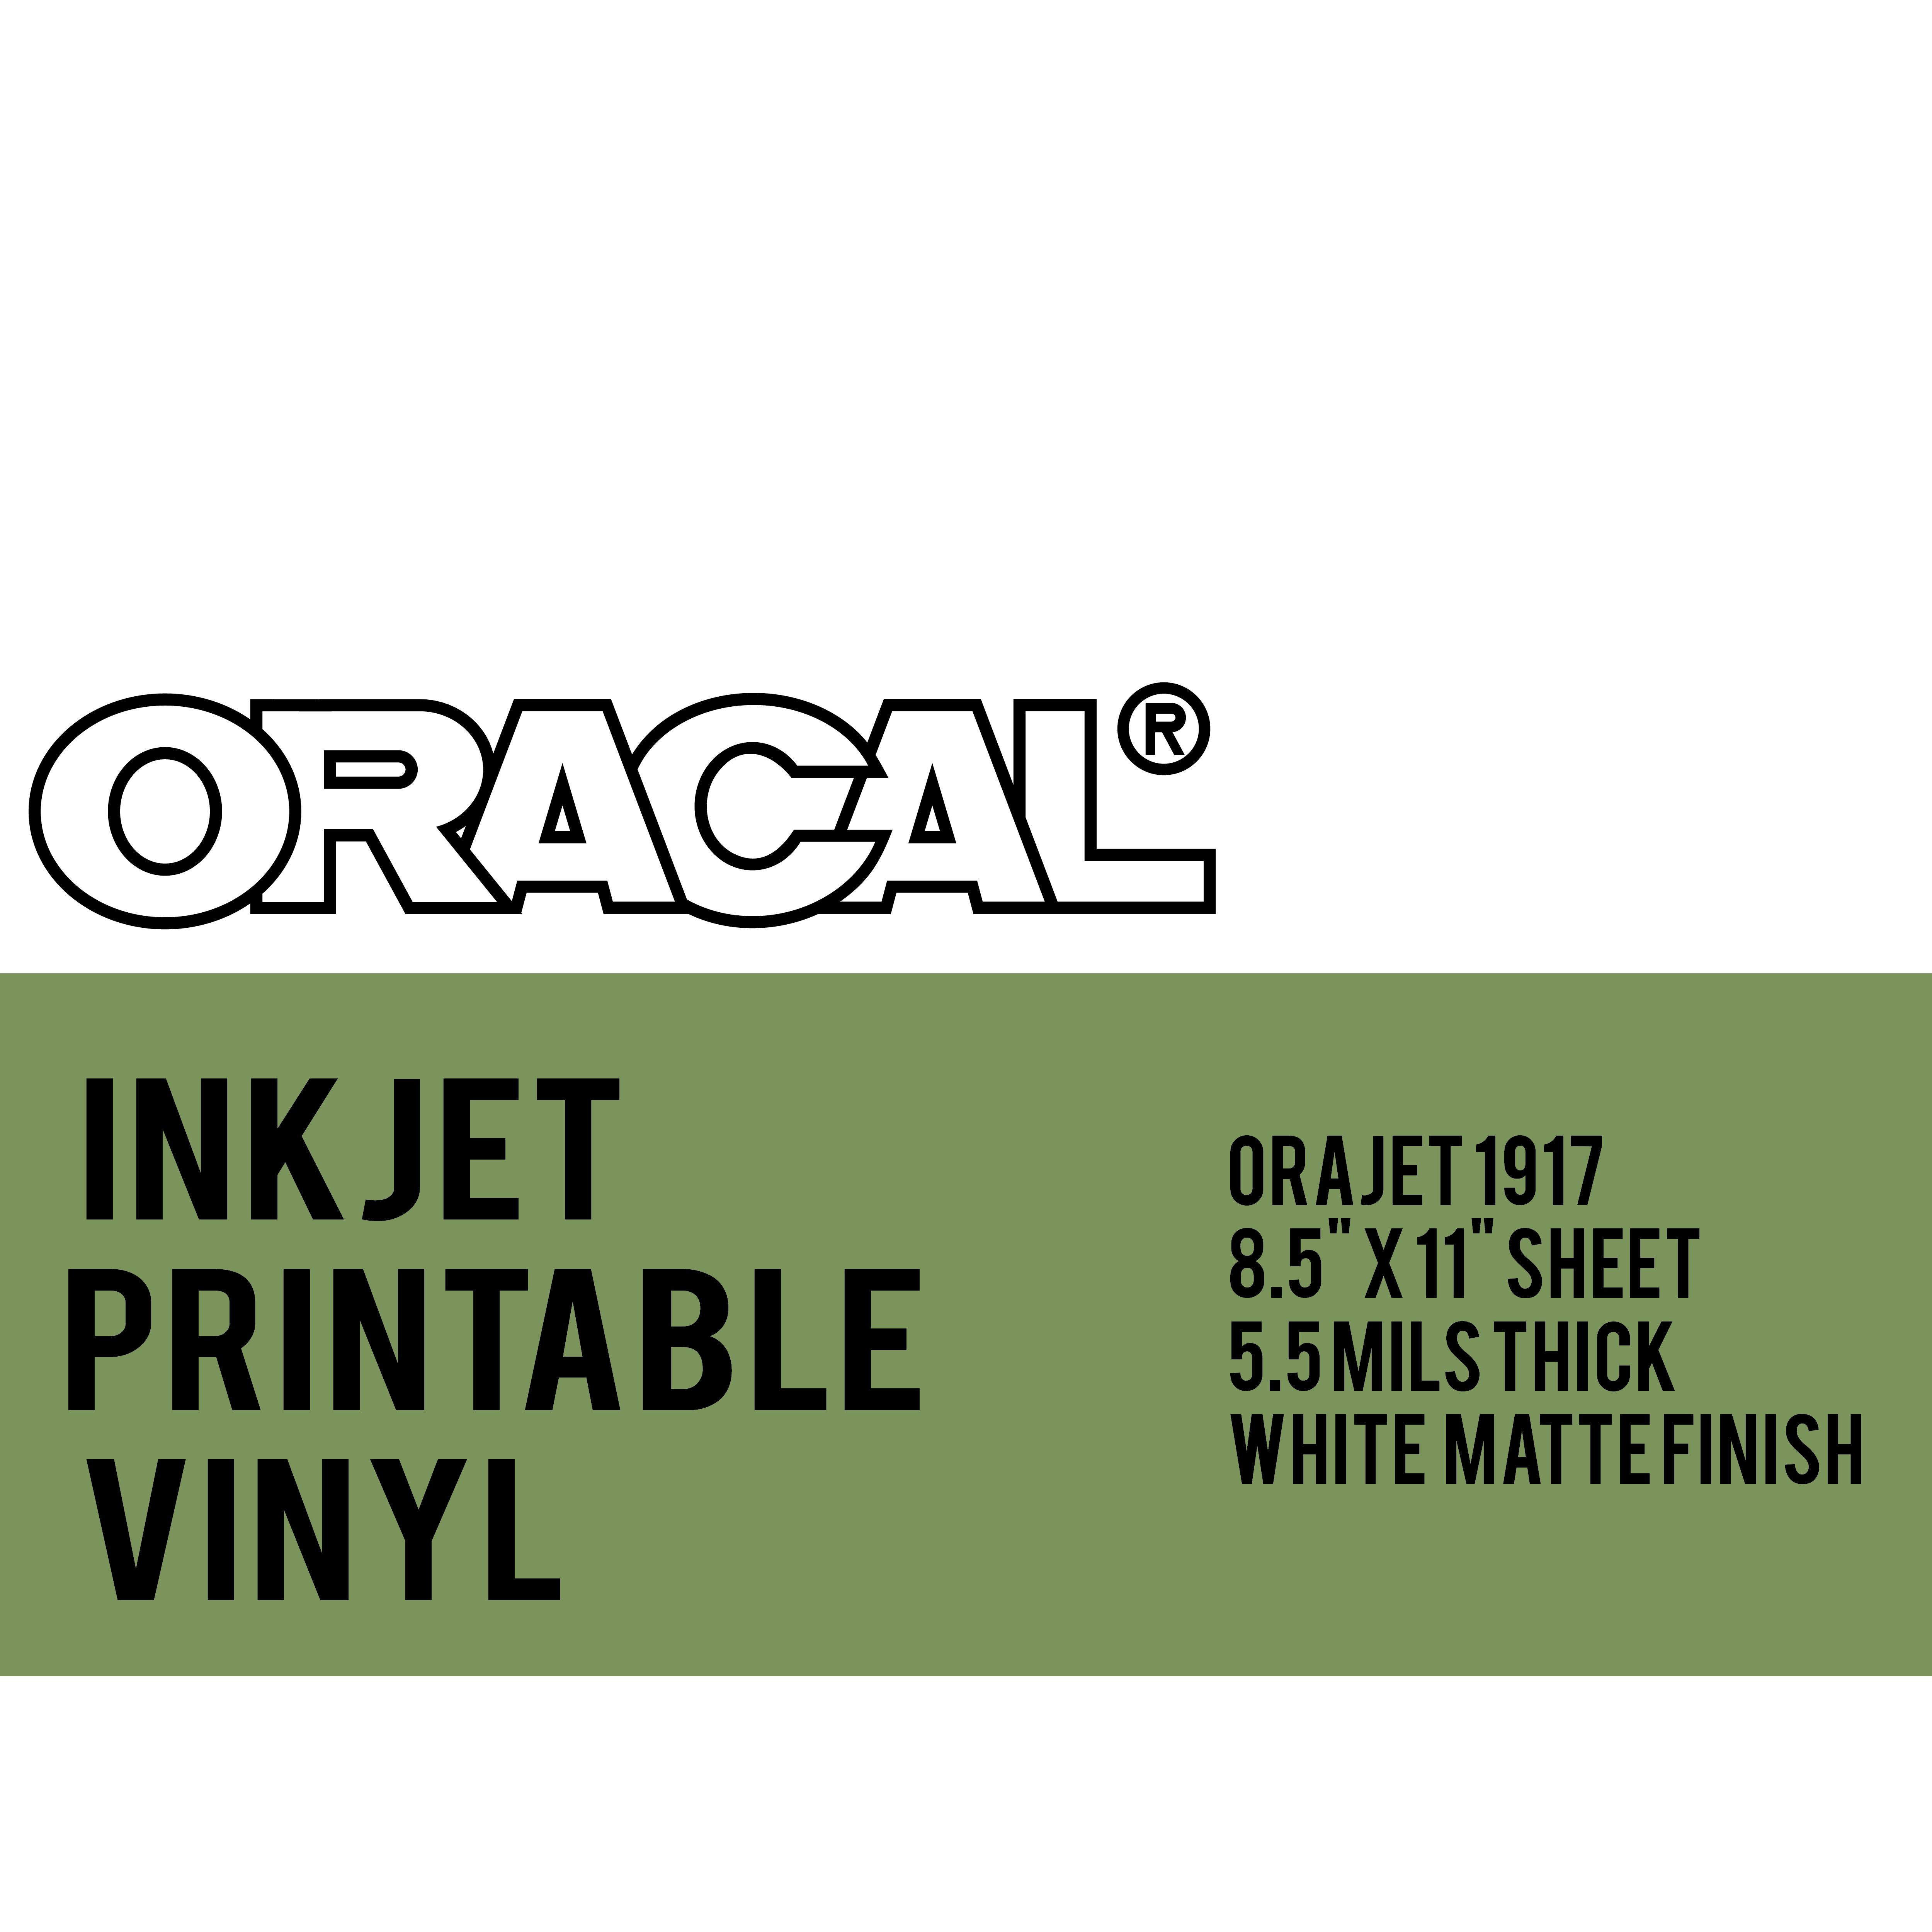 picture regarding Starcraft Printable Vinyl named Oracal Inkjet Printable Long term adhesive Vinyl As a result of The 8.5 x 11 inch Sheet